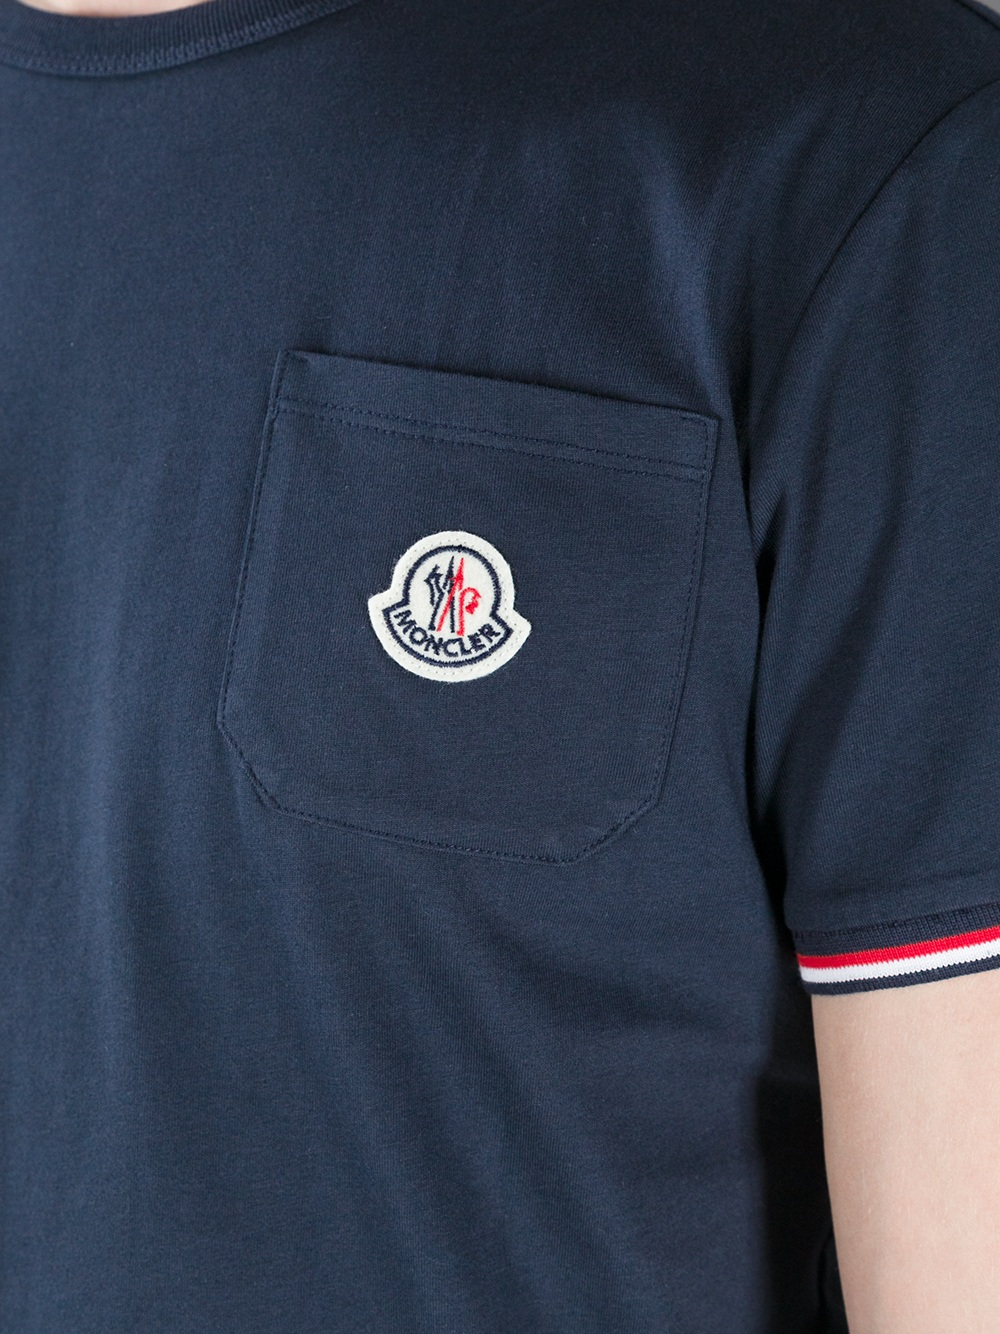 moncler t shirt for sale